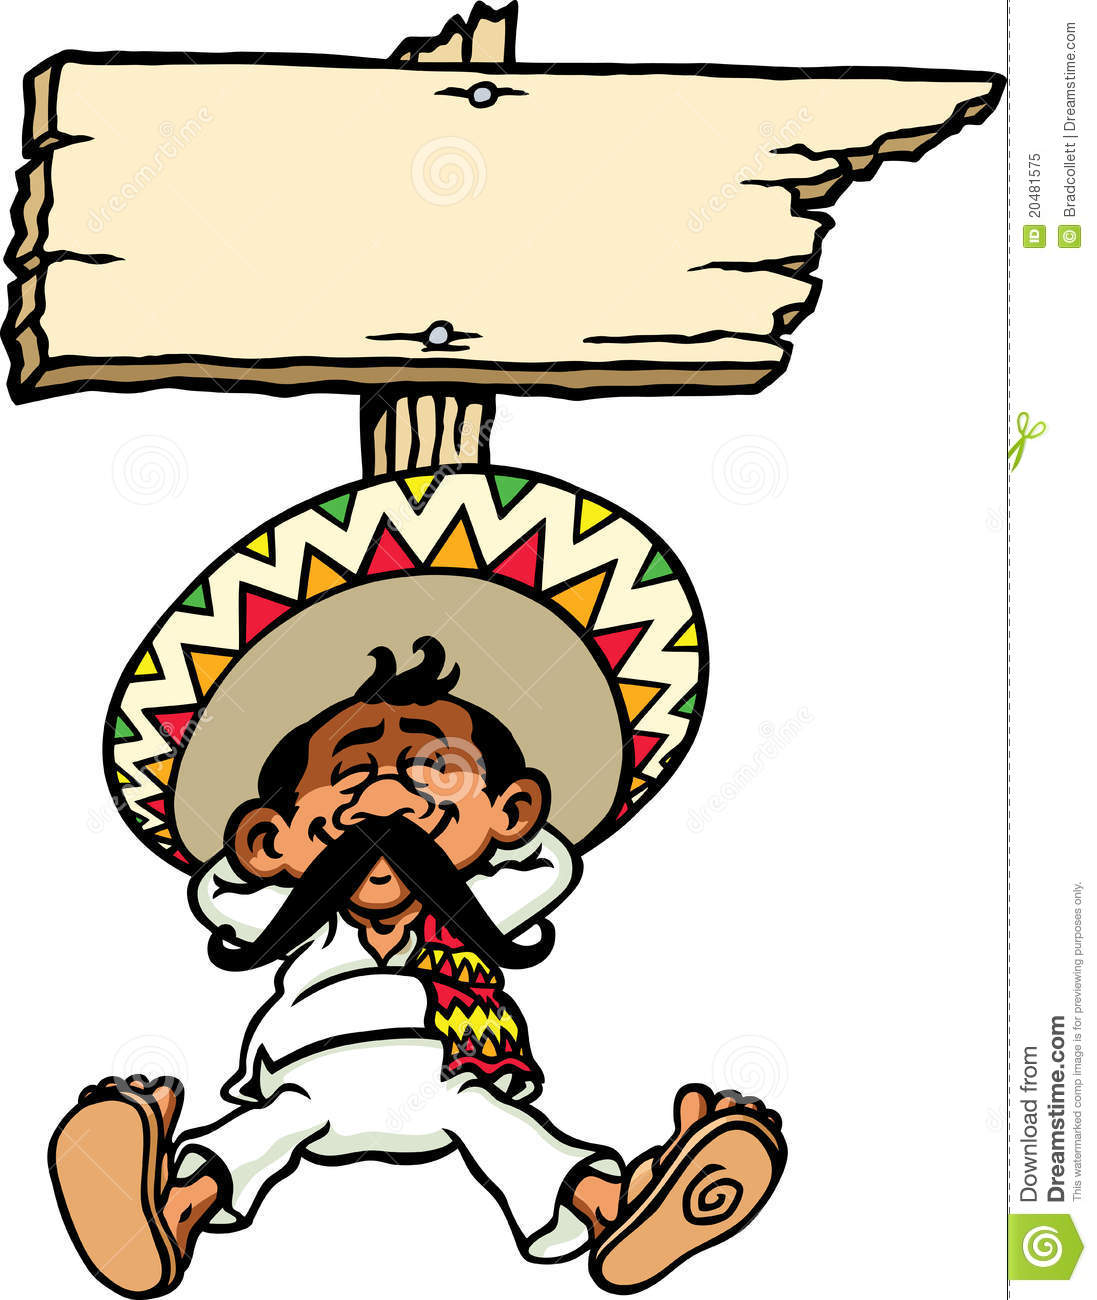 funny mexican clipart - photo #23